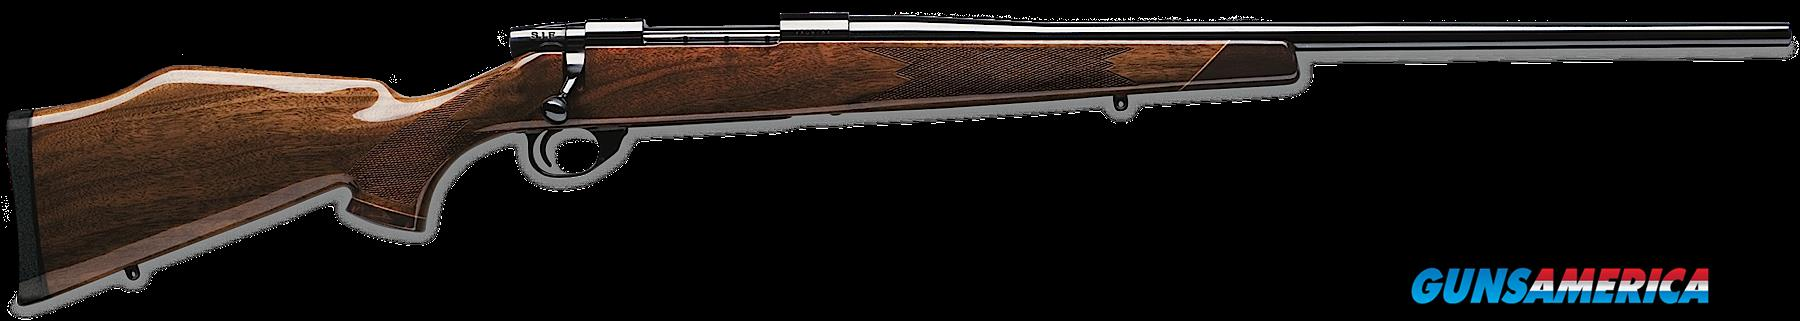 "Weatherby VGX257WR4O Vanguard Series 2 Deluxe Bolt 257 Weatherby Magnum 24"" 3+1 Walnut Stk Blued  Guns > Rifles > W Misc Rifles"